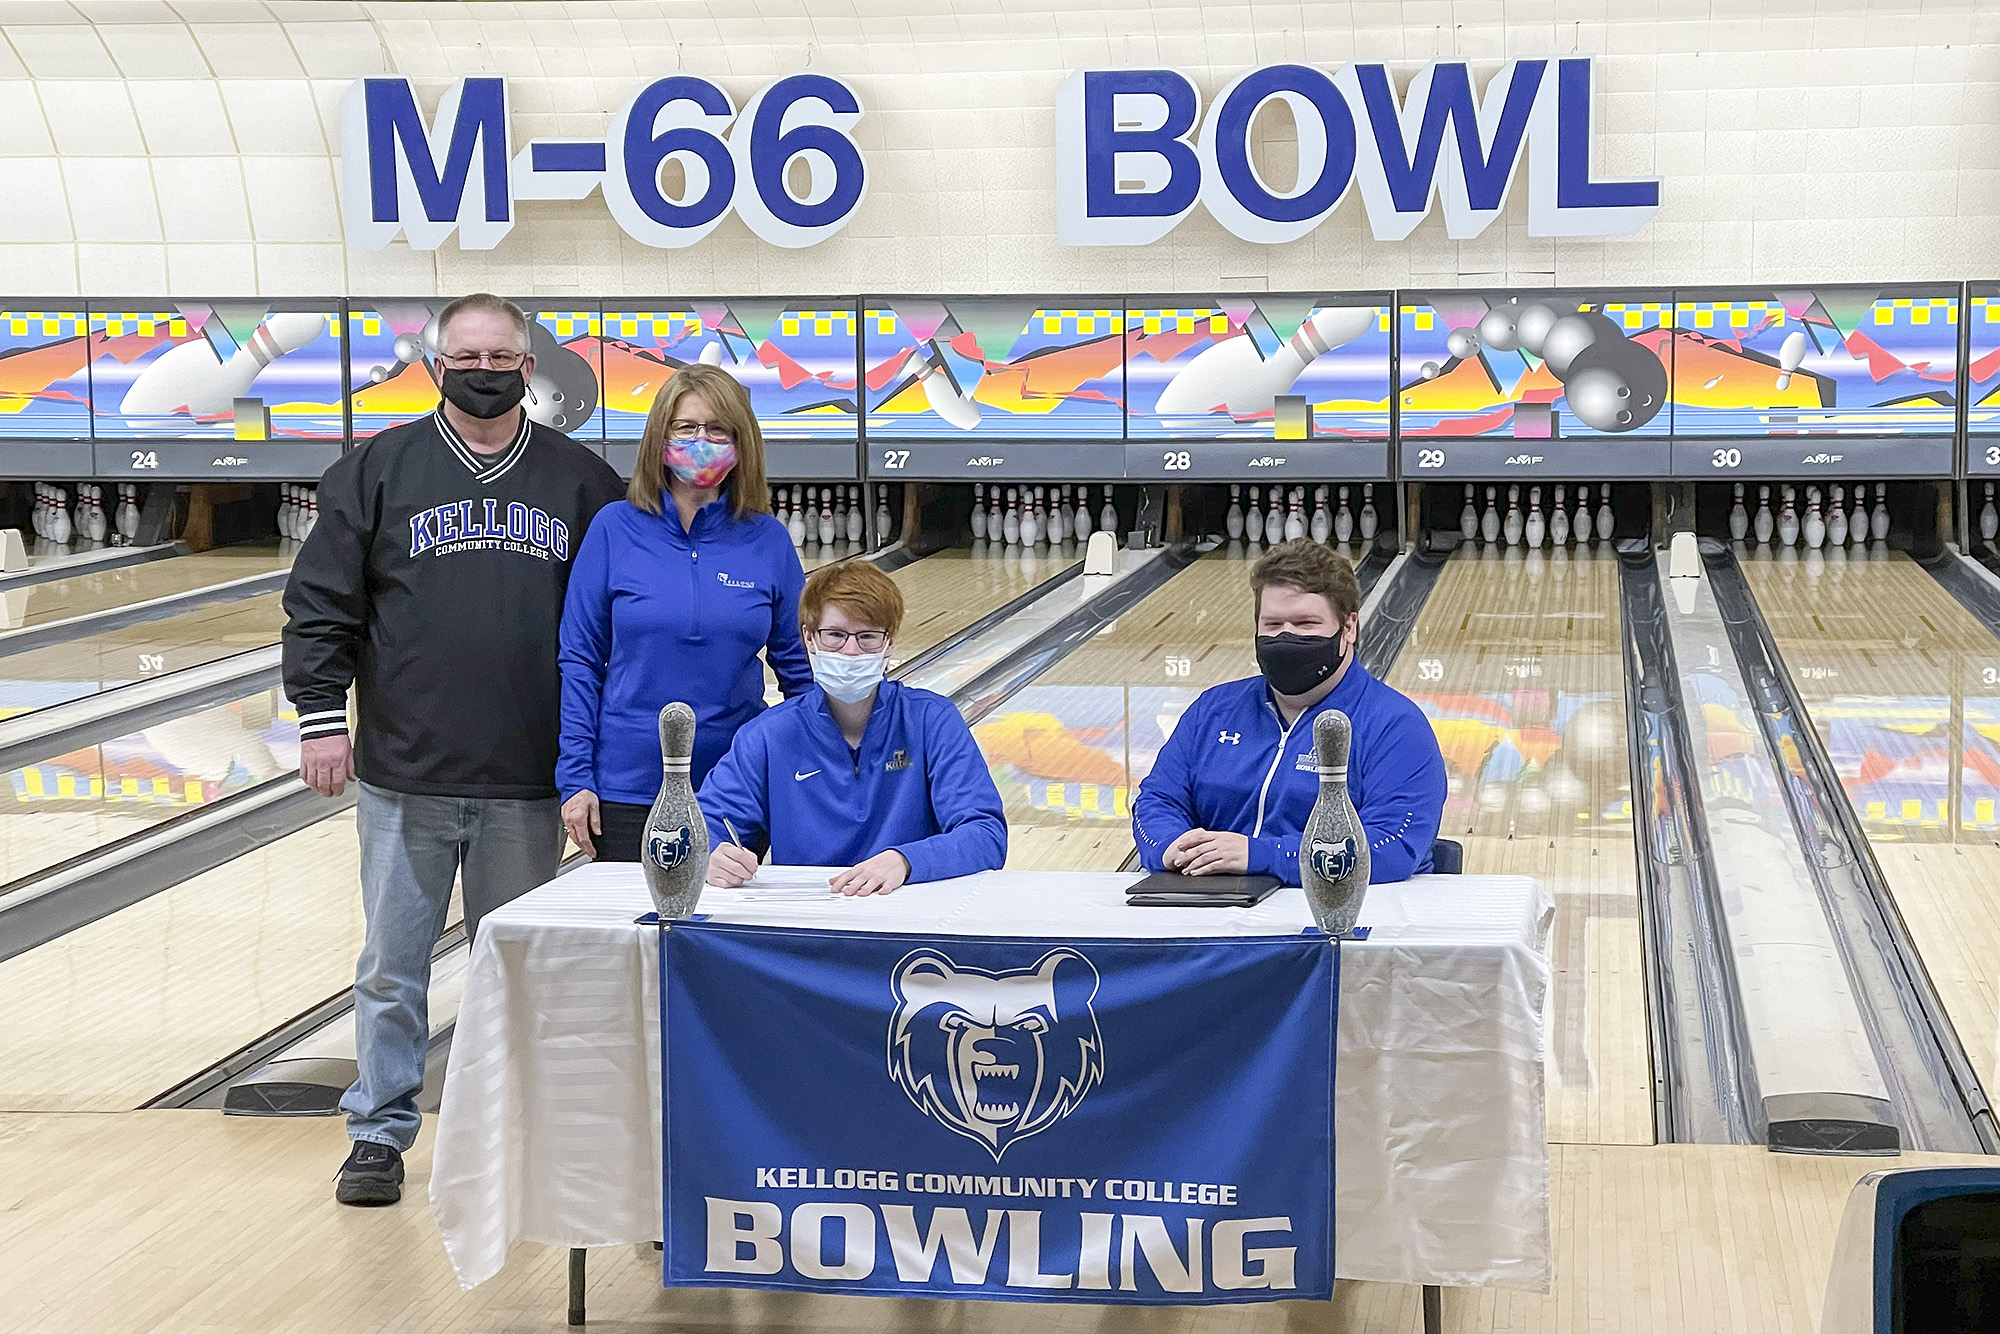 Pictured, from left to right, are Zach Beard (father), Cheryl Beard (mother), Cody Beard and Head KCC Bowling Coach Brad Morgan.